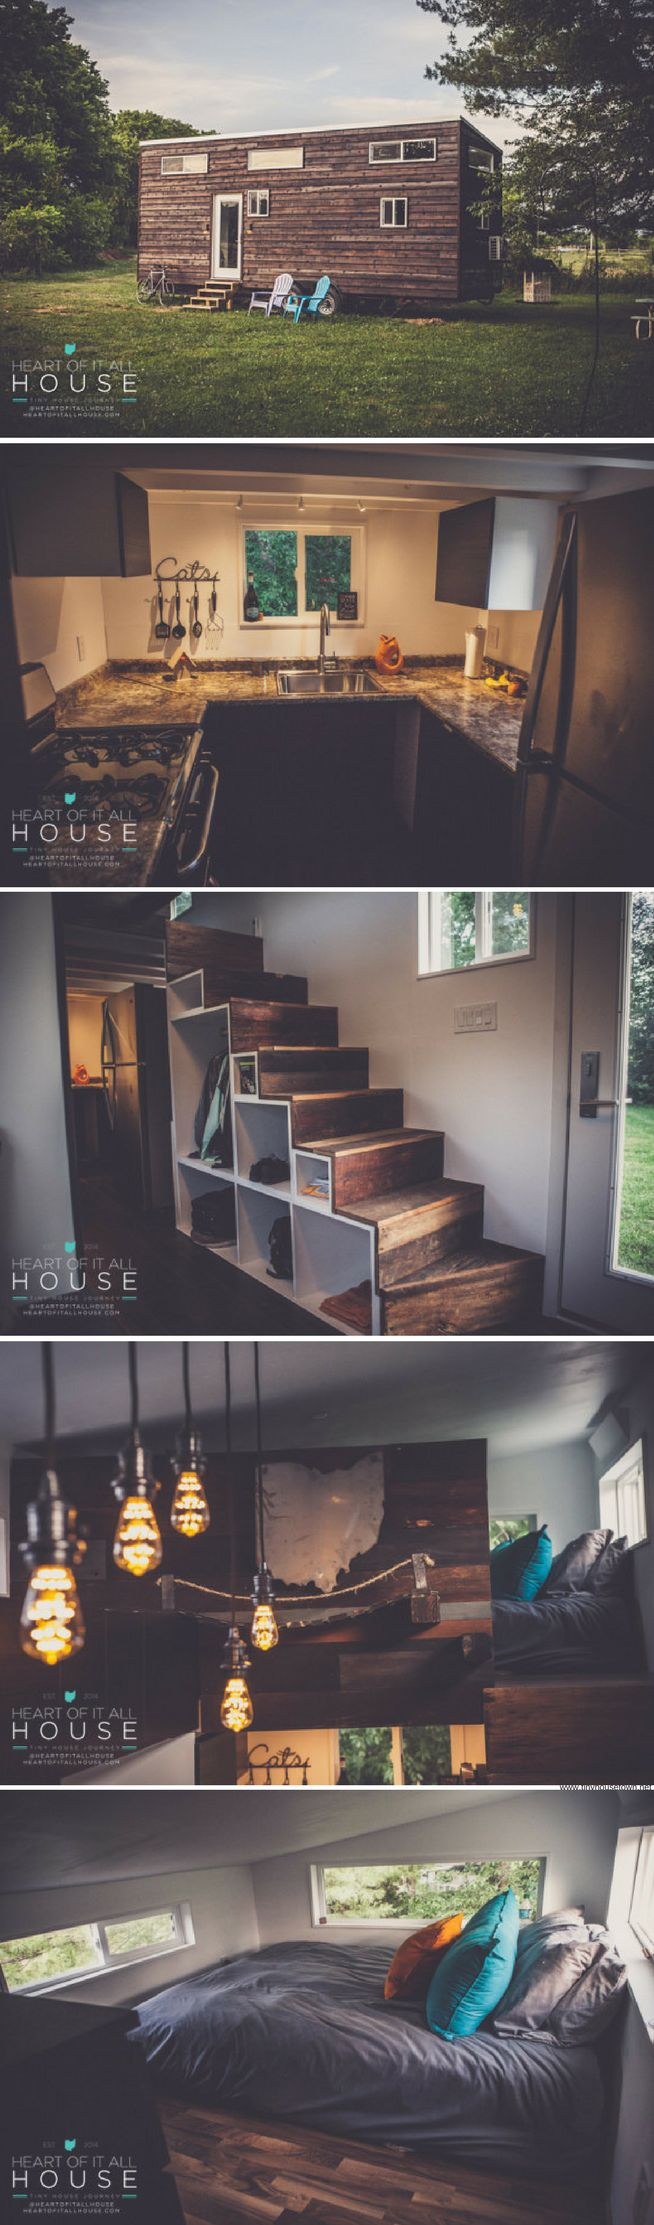 ^ 1000+ ideas about Haus on Pinterest loset, Bedroom divider and ...